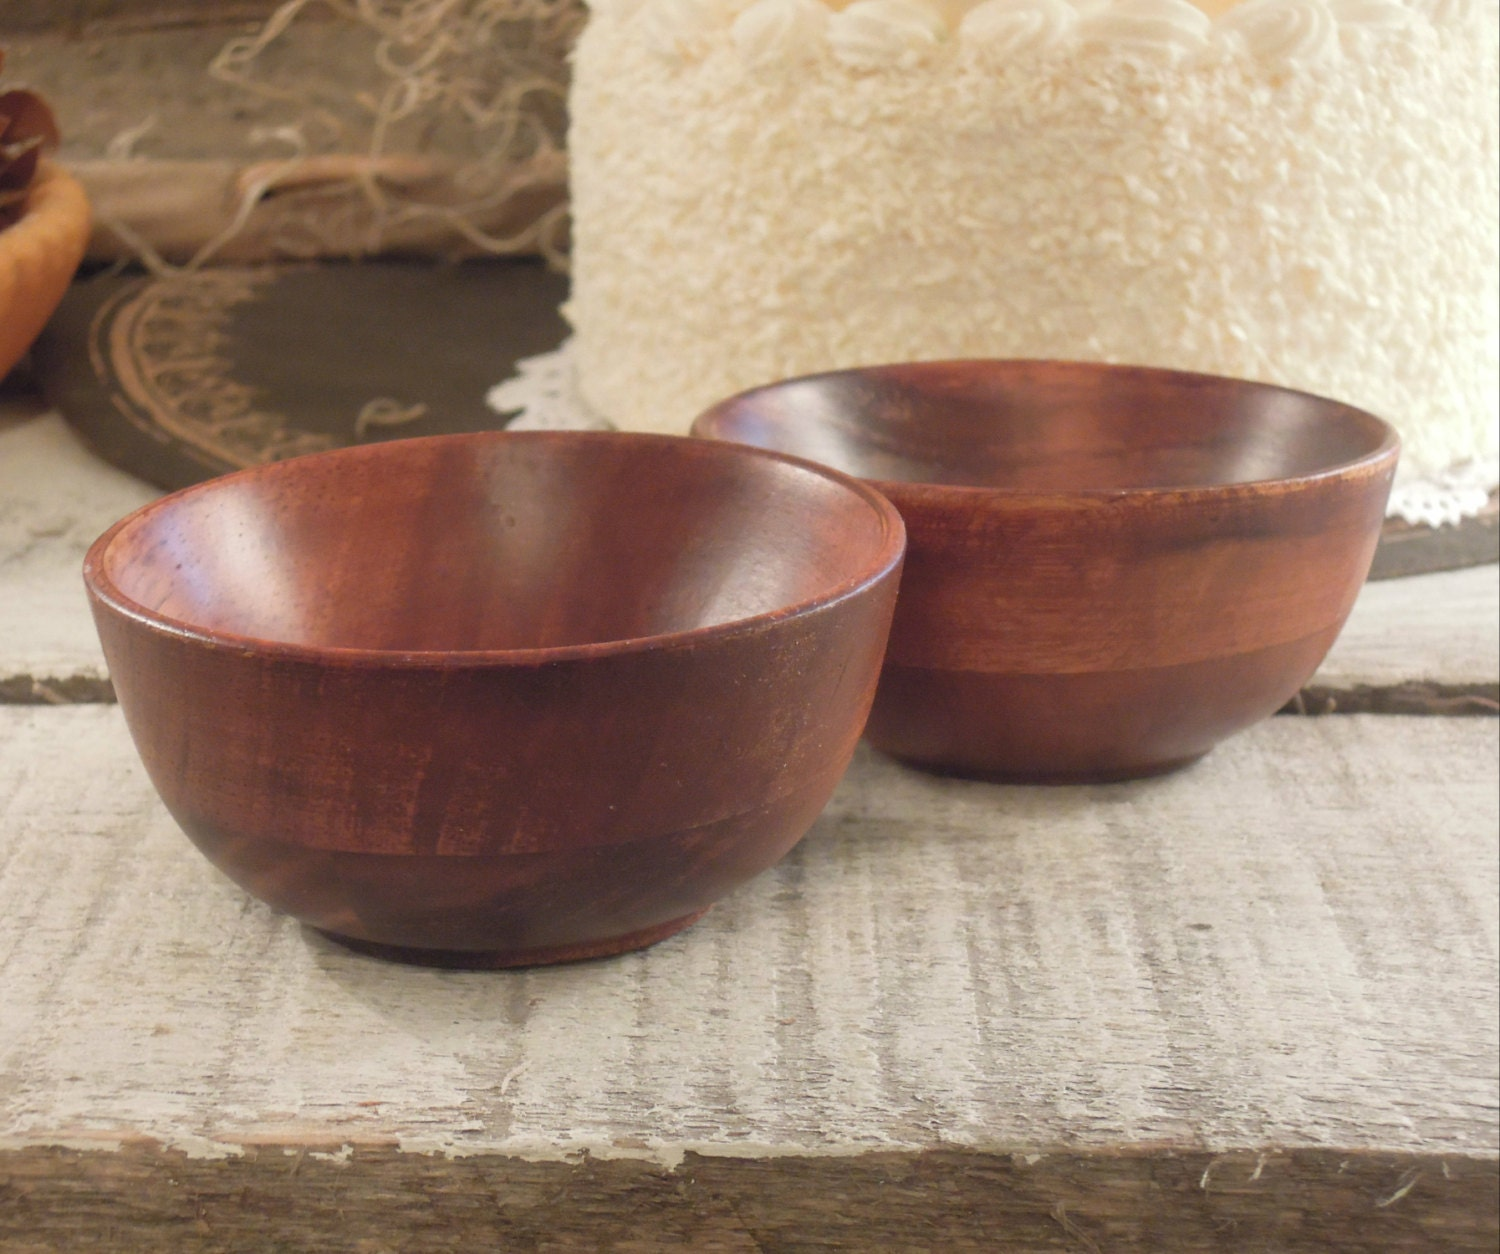 WOOD PINCH BOWLS, Prep Bowls, Small Wooden Bowls for ... |Small Wooden Bowls Saucers